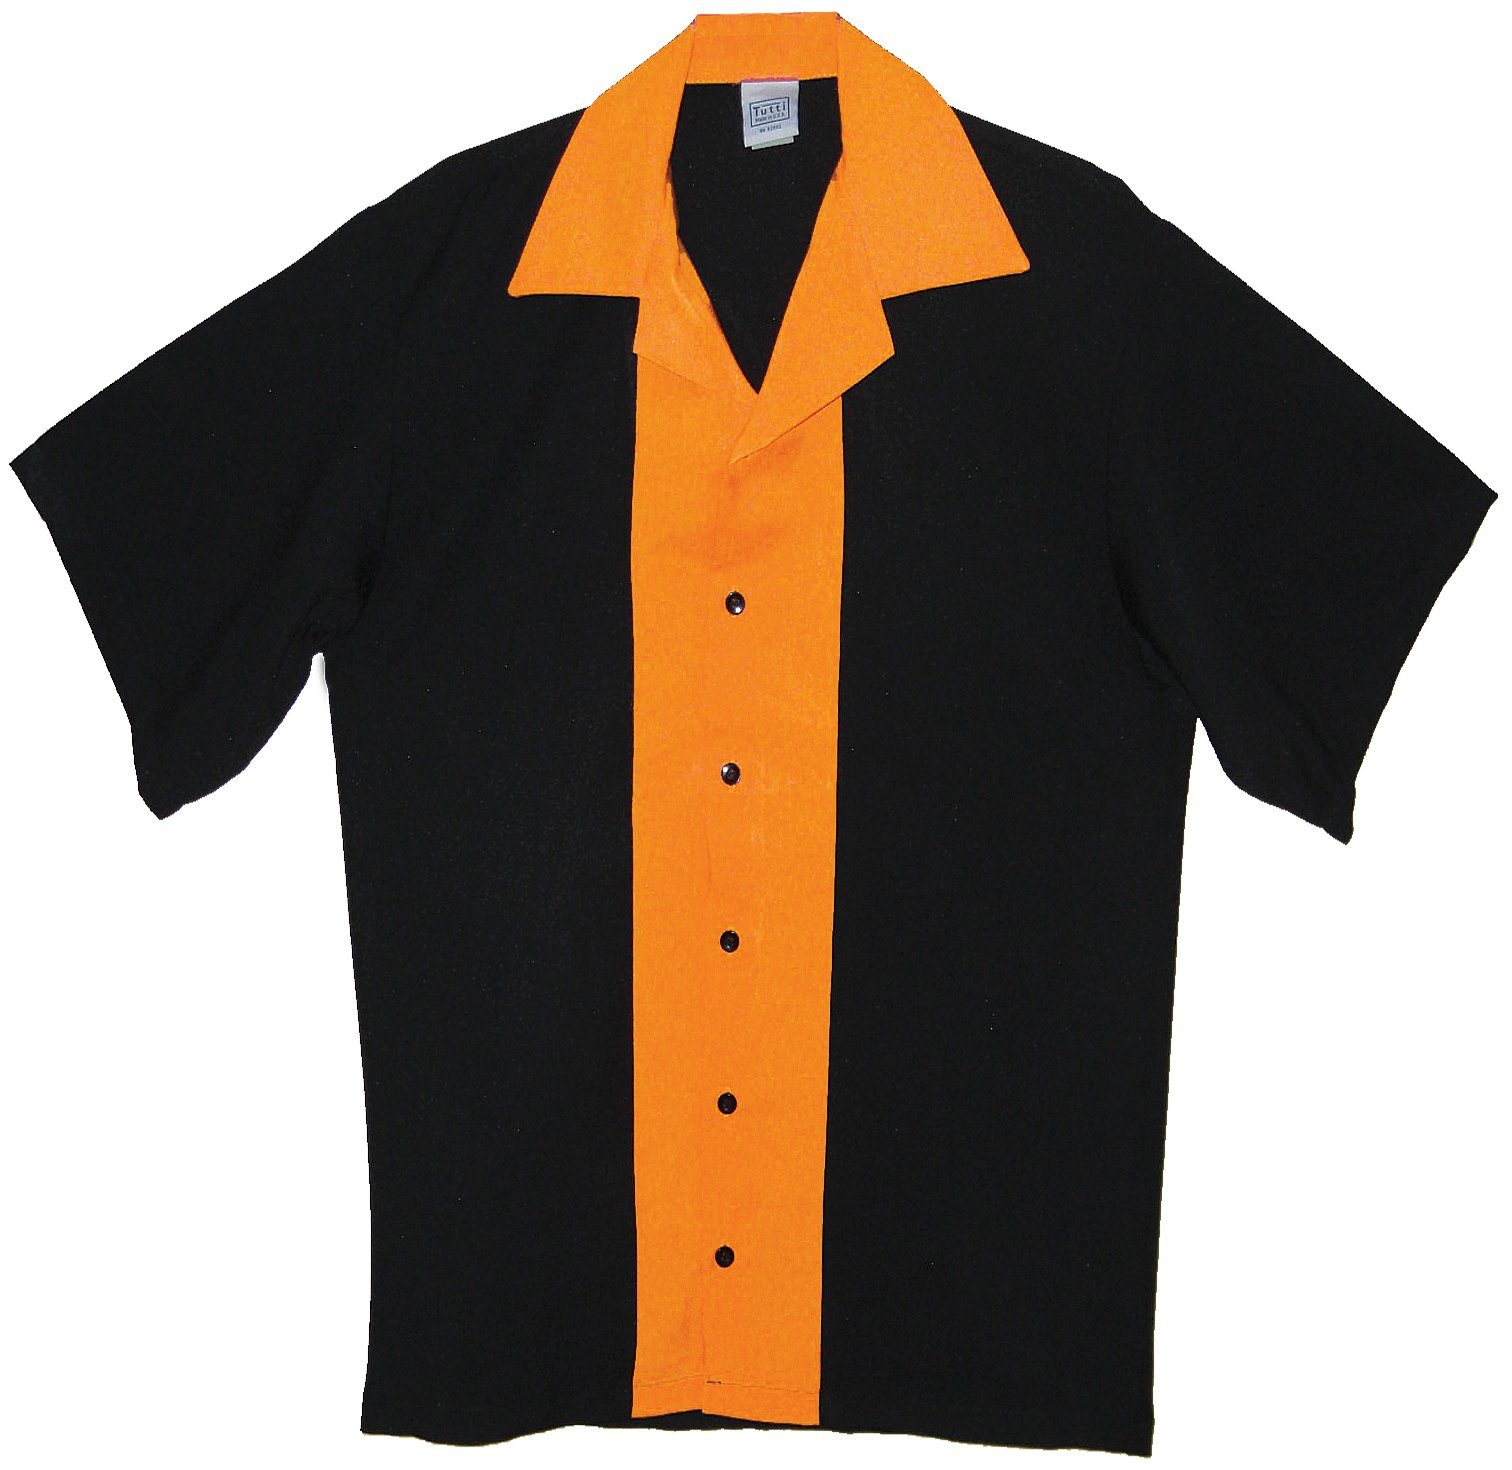 Tutti Mens Bowling Shirts (Small) Orange by Tutti